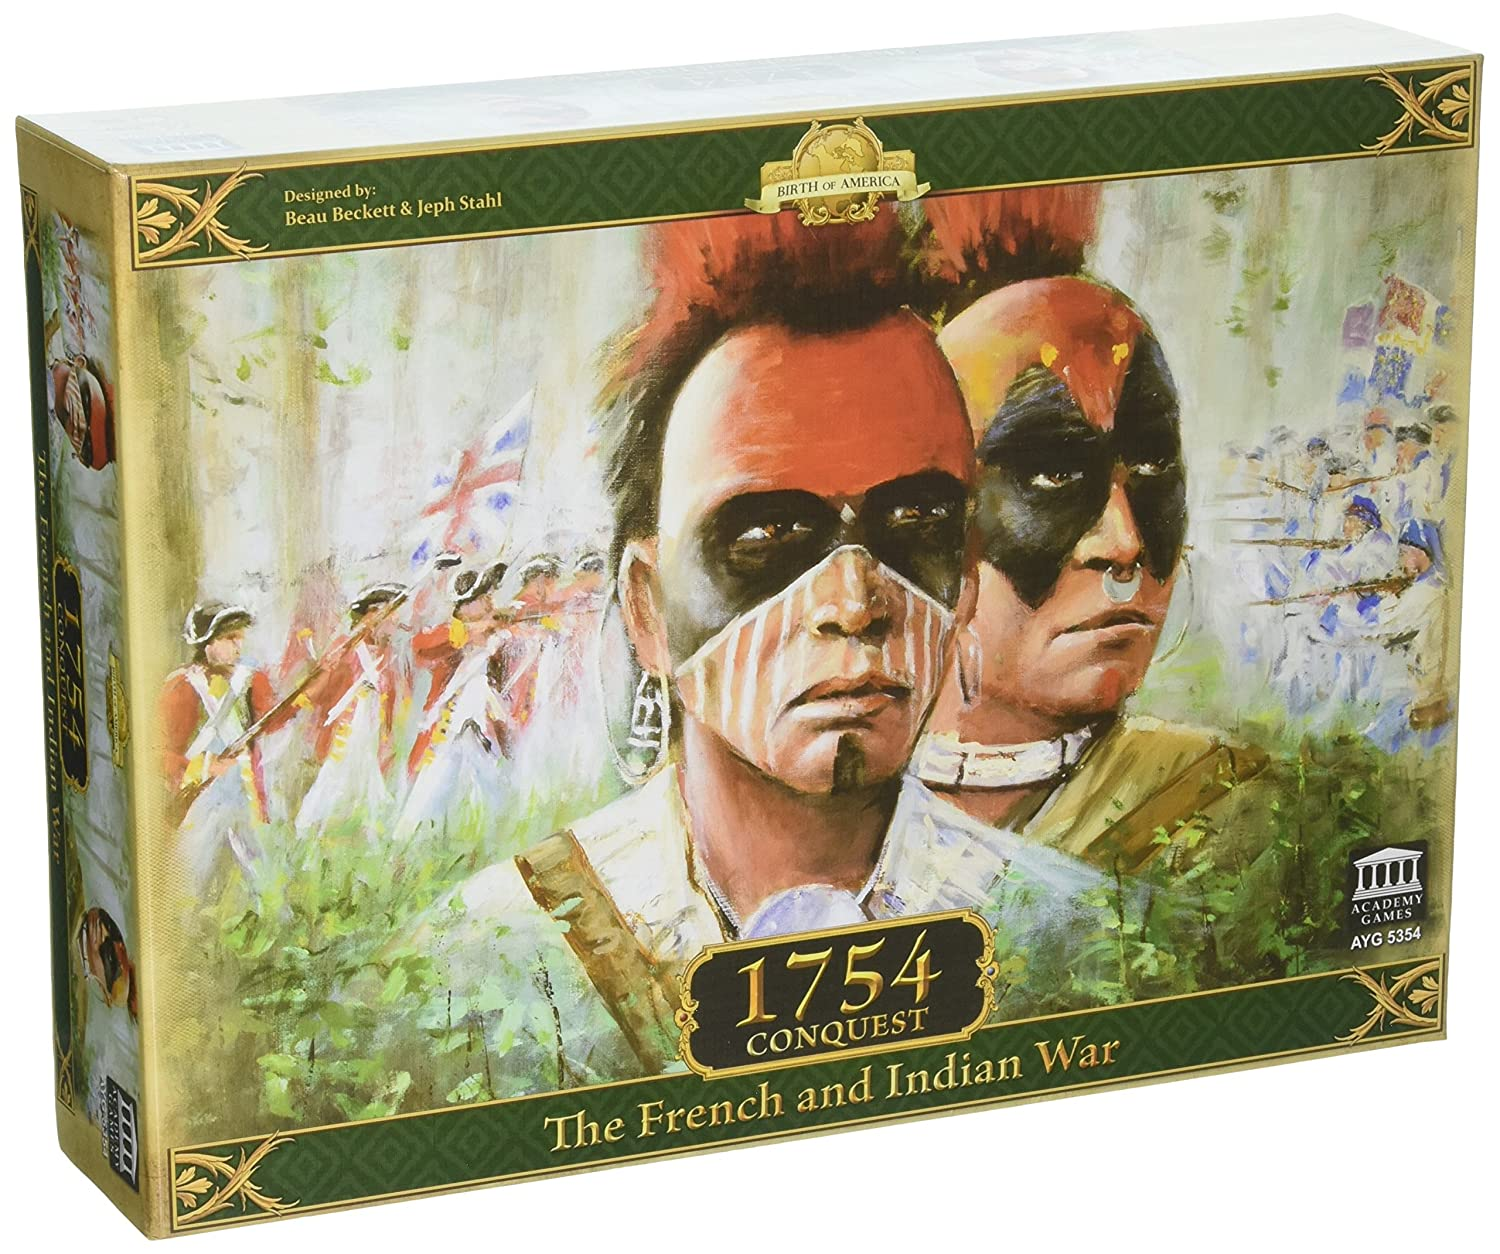 Amazon.com: 1754 Conquest The French & Indian War Board Game: Toys & Games